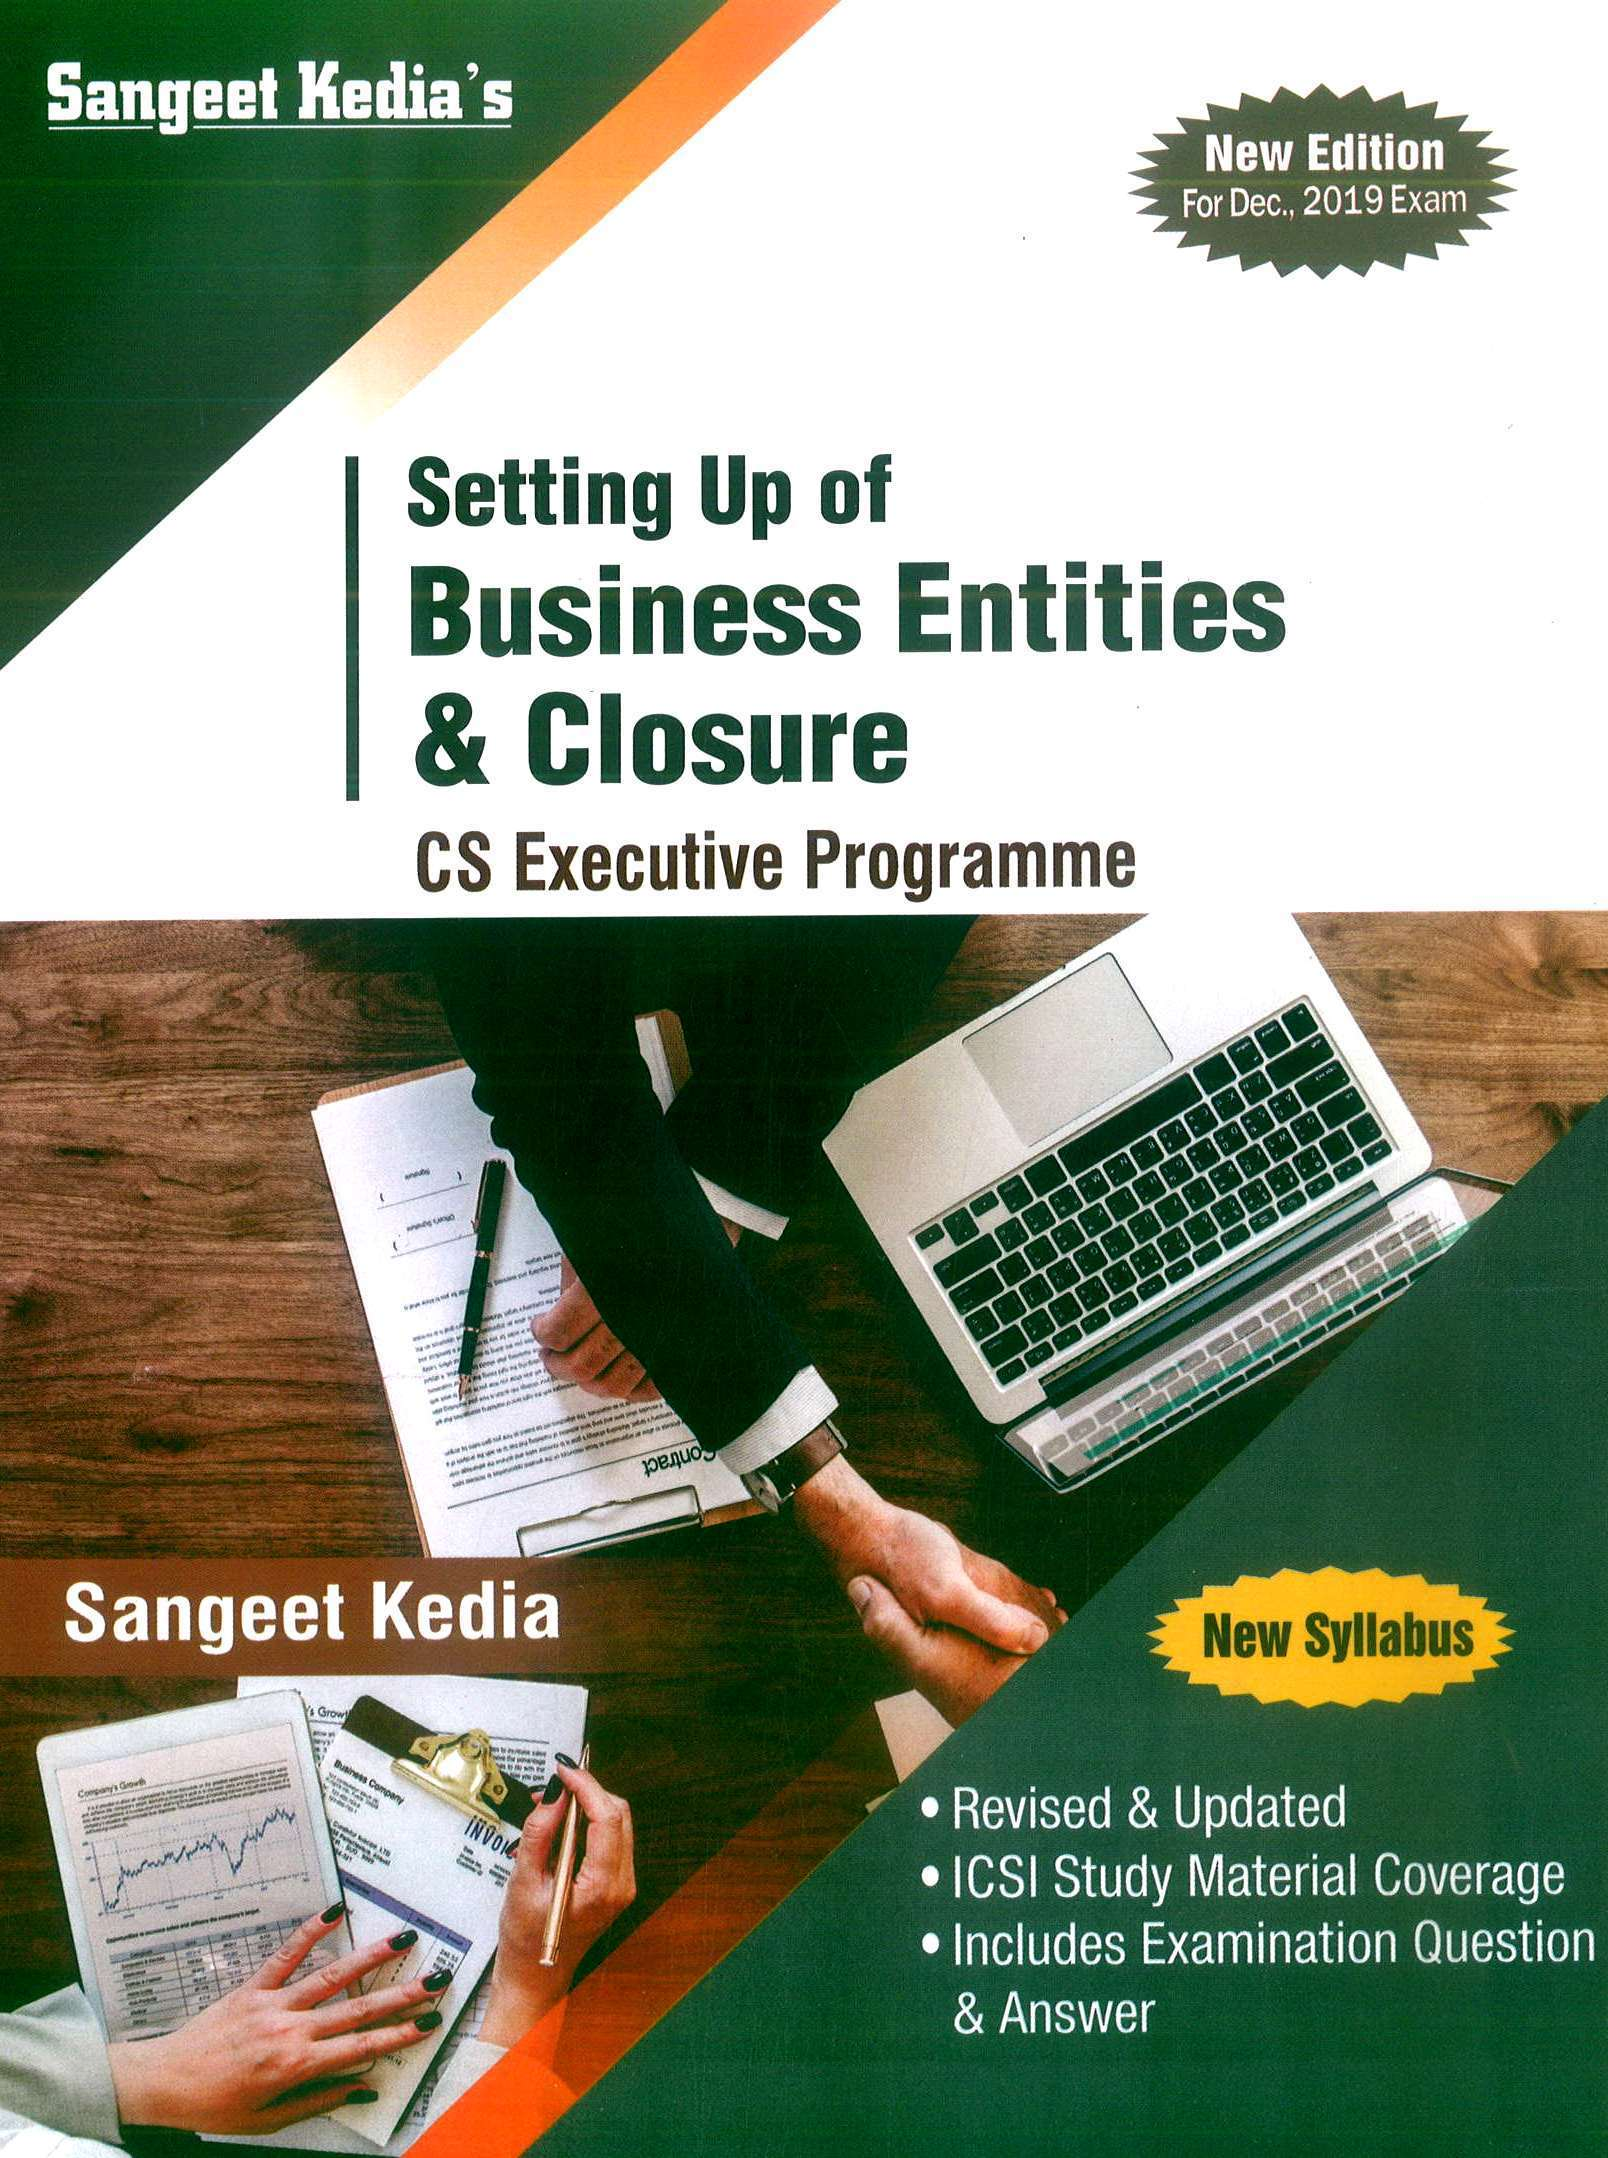 Pooja Law House CS Executive Setting Up Of Business Entities & Closure New Syllabus By Sangeet Kedia Applicable for December 2019 Exam